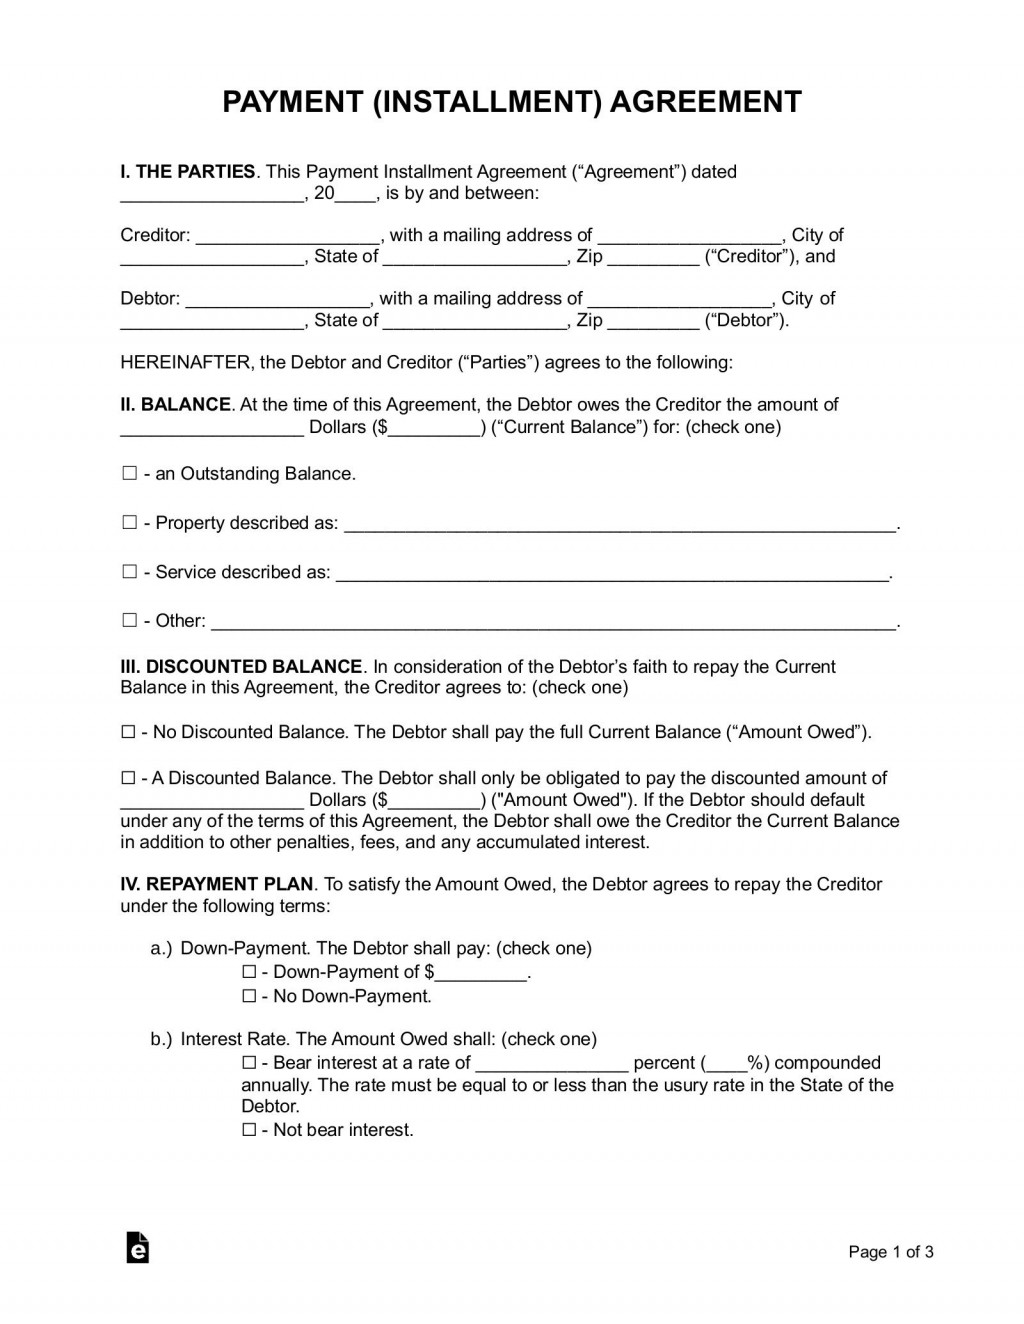 008 Archaicawful Installment Payment Contract Template High Definition  Agreement Free Car WordLarge